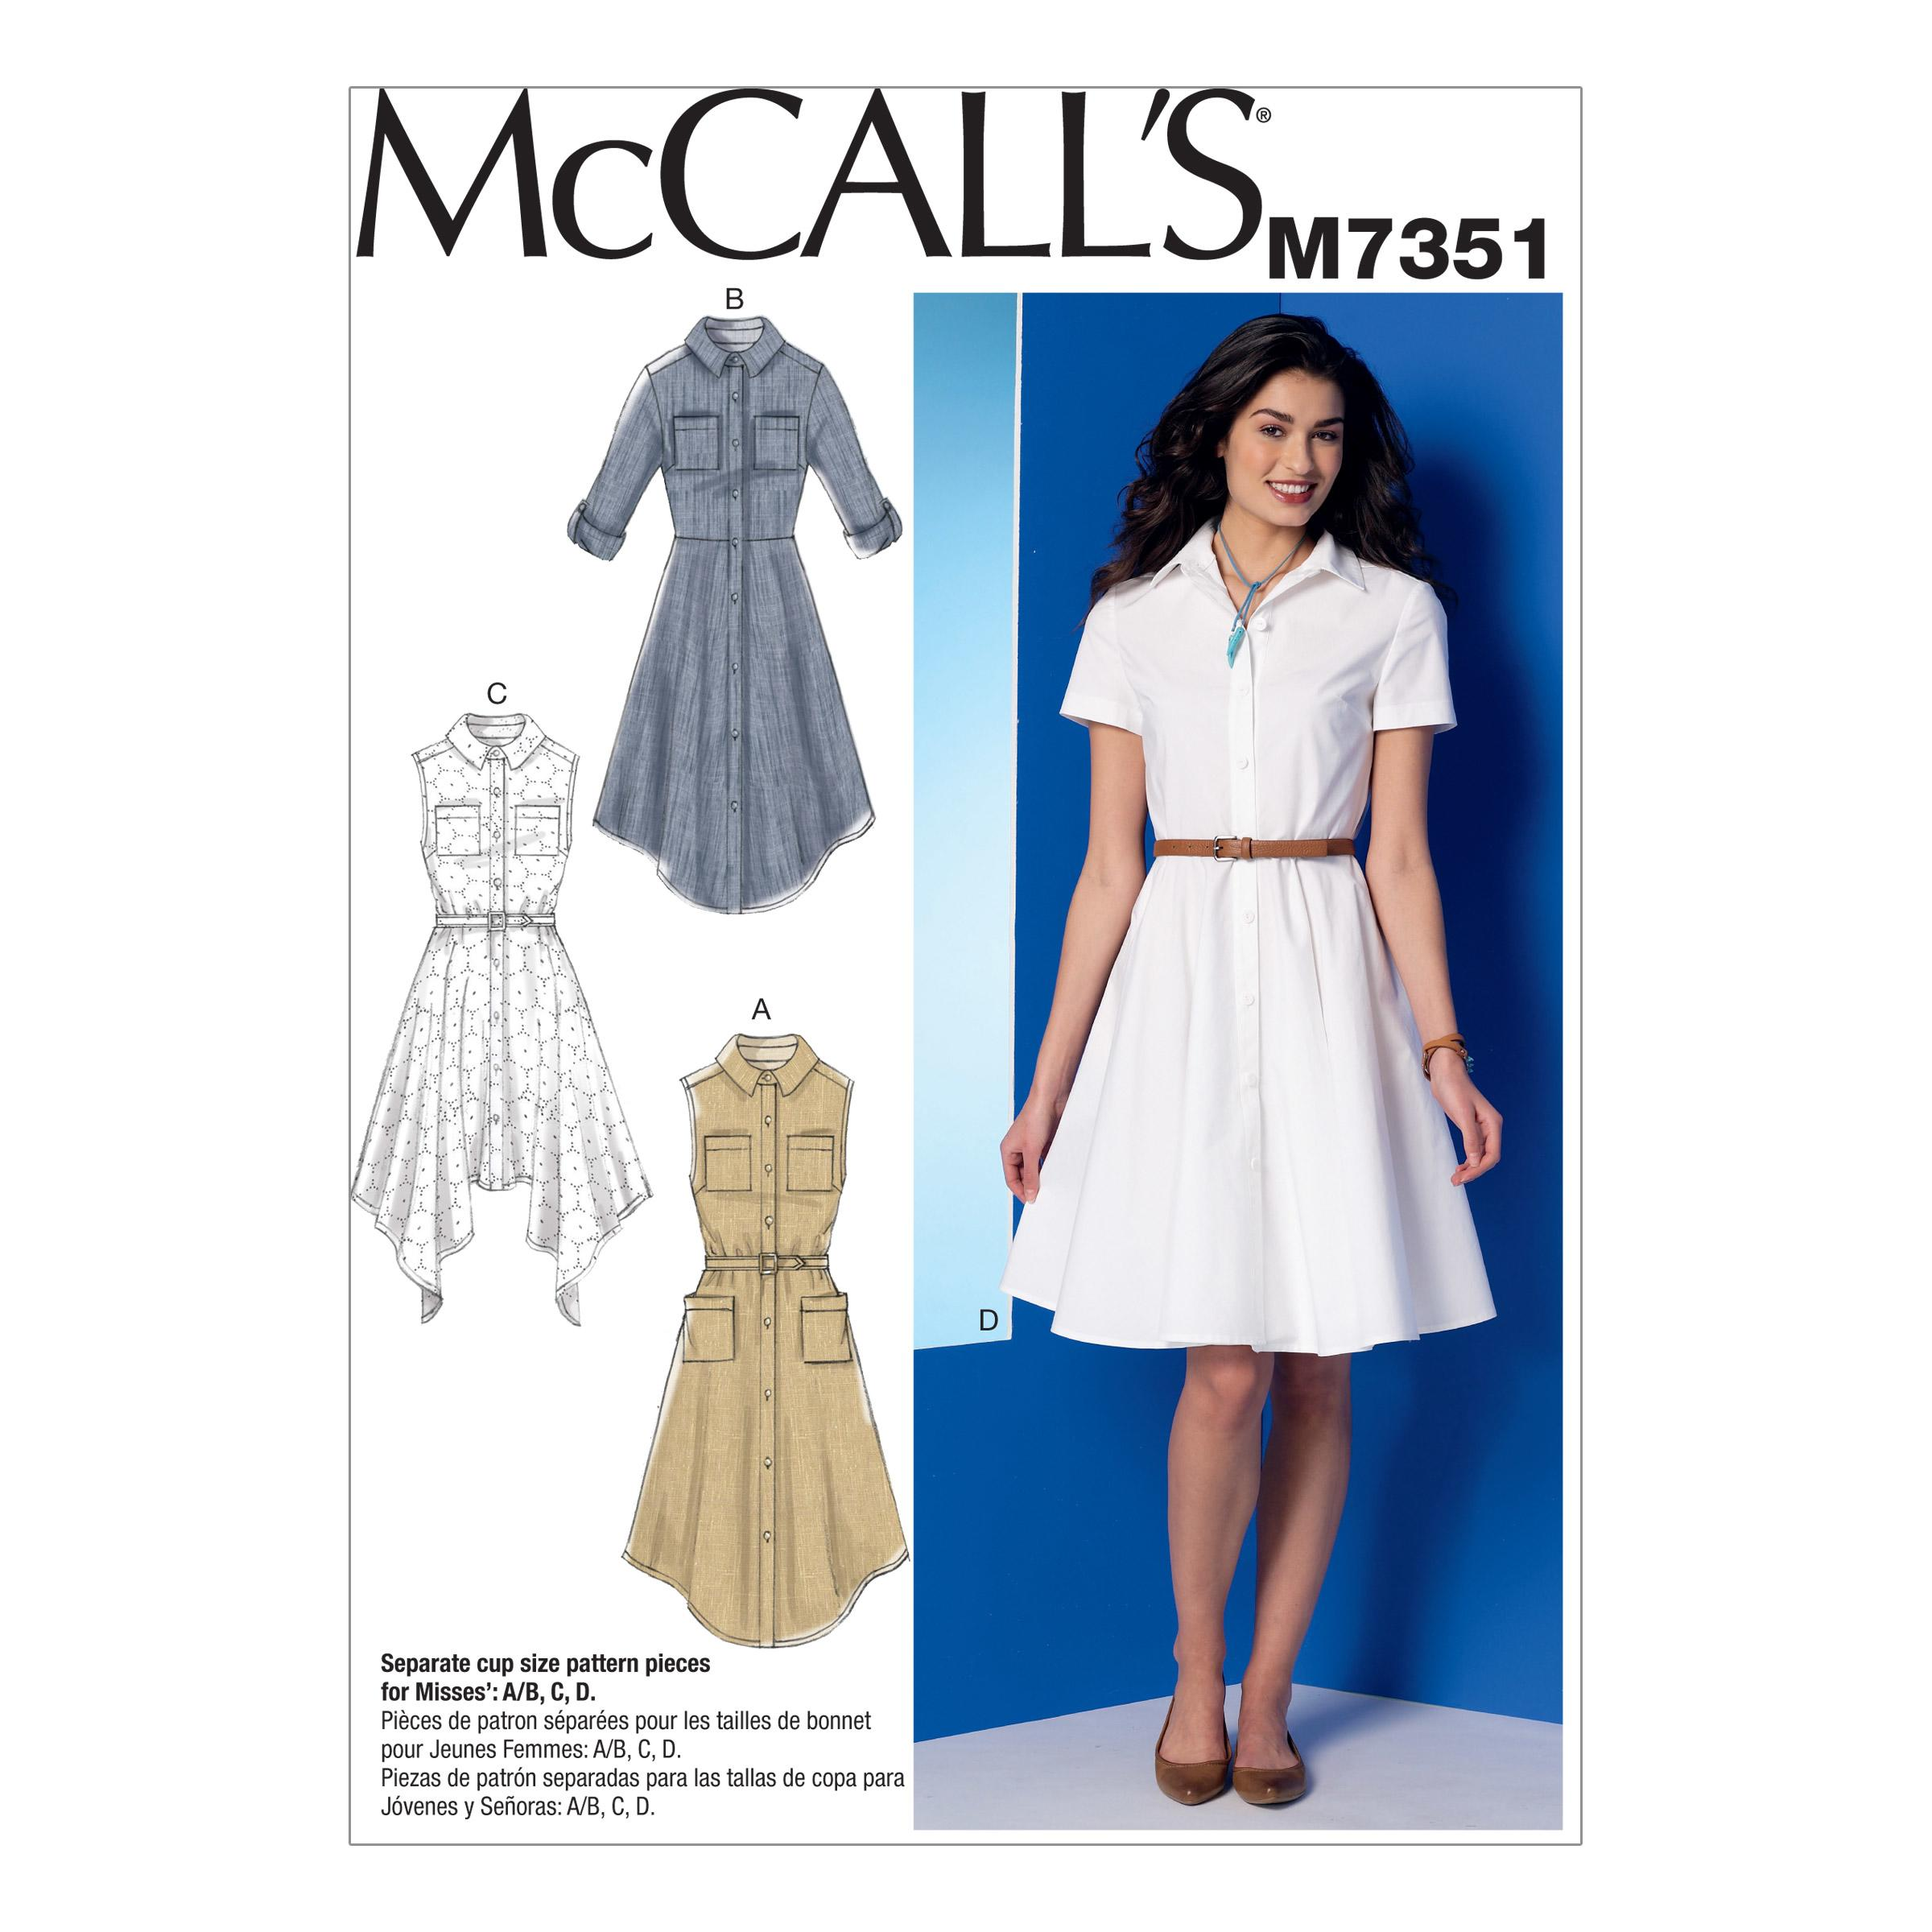 McCalls M7351 A/B, C & D Cup Sizes, Dresses